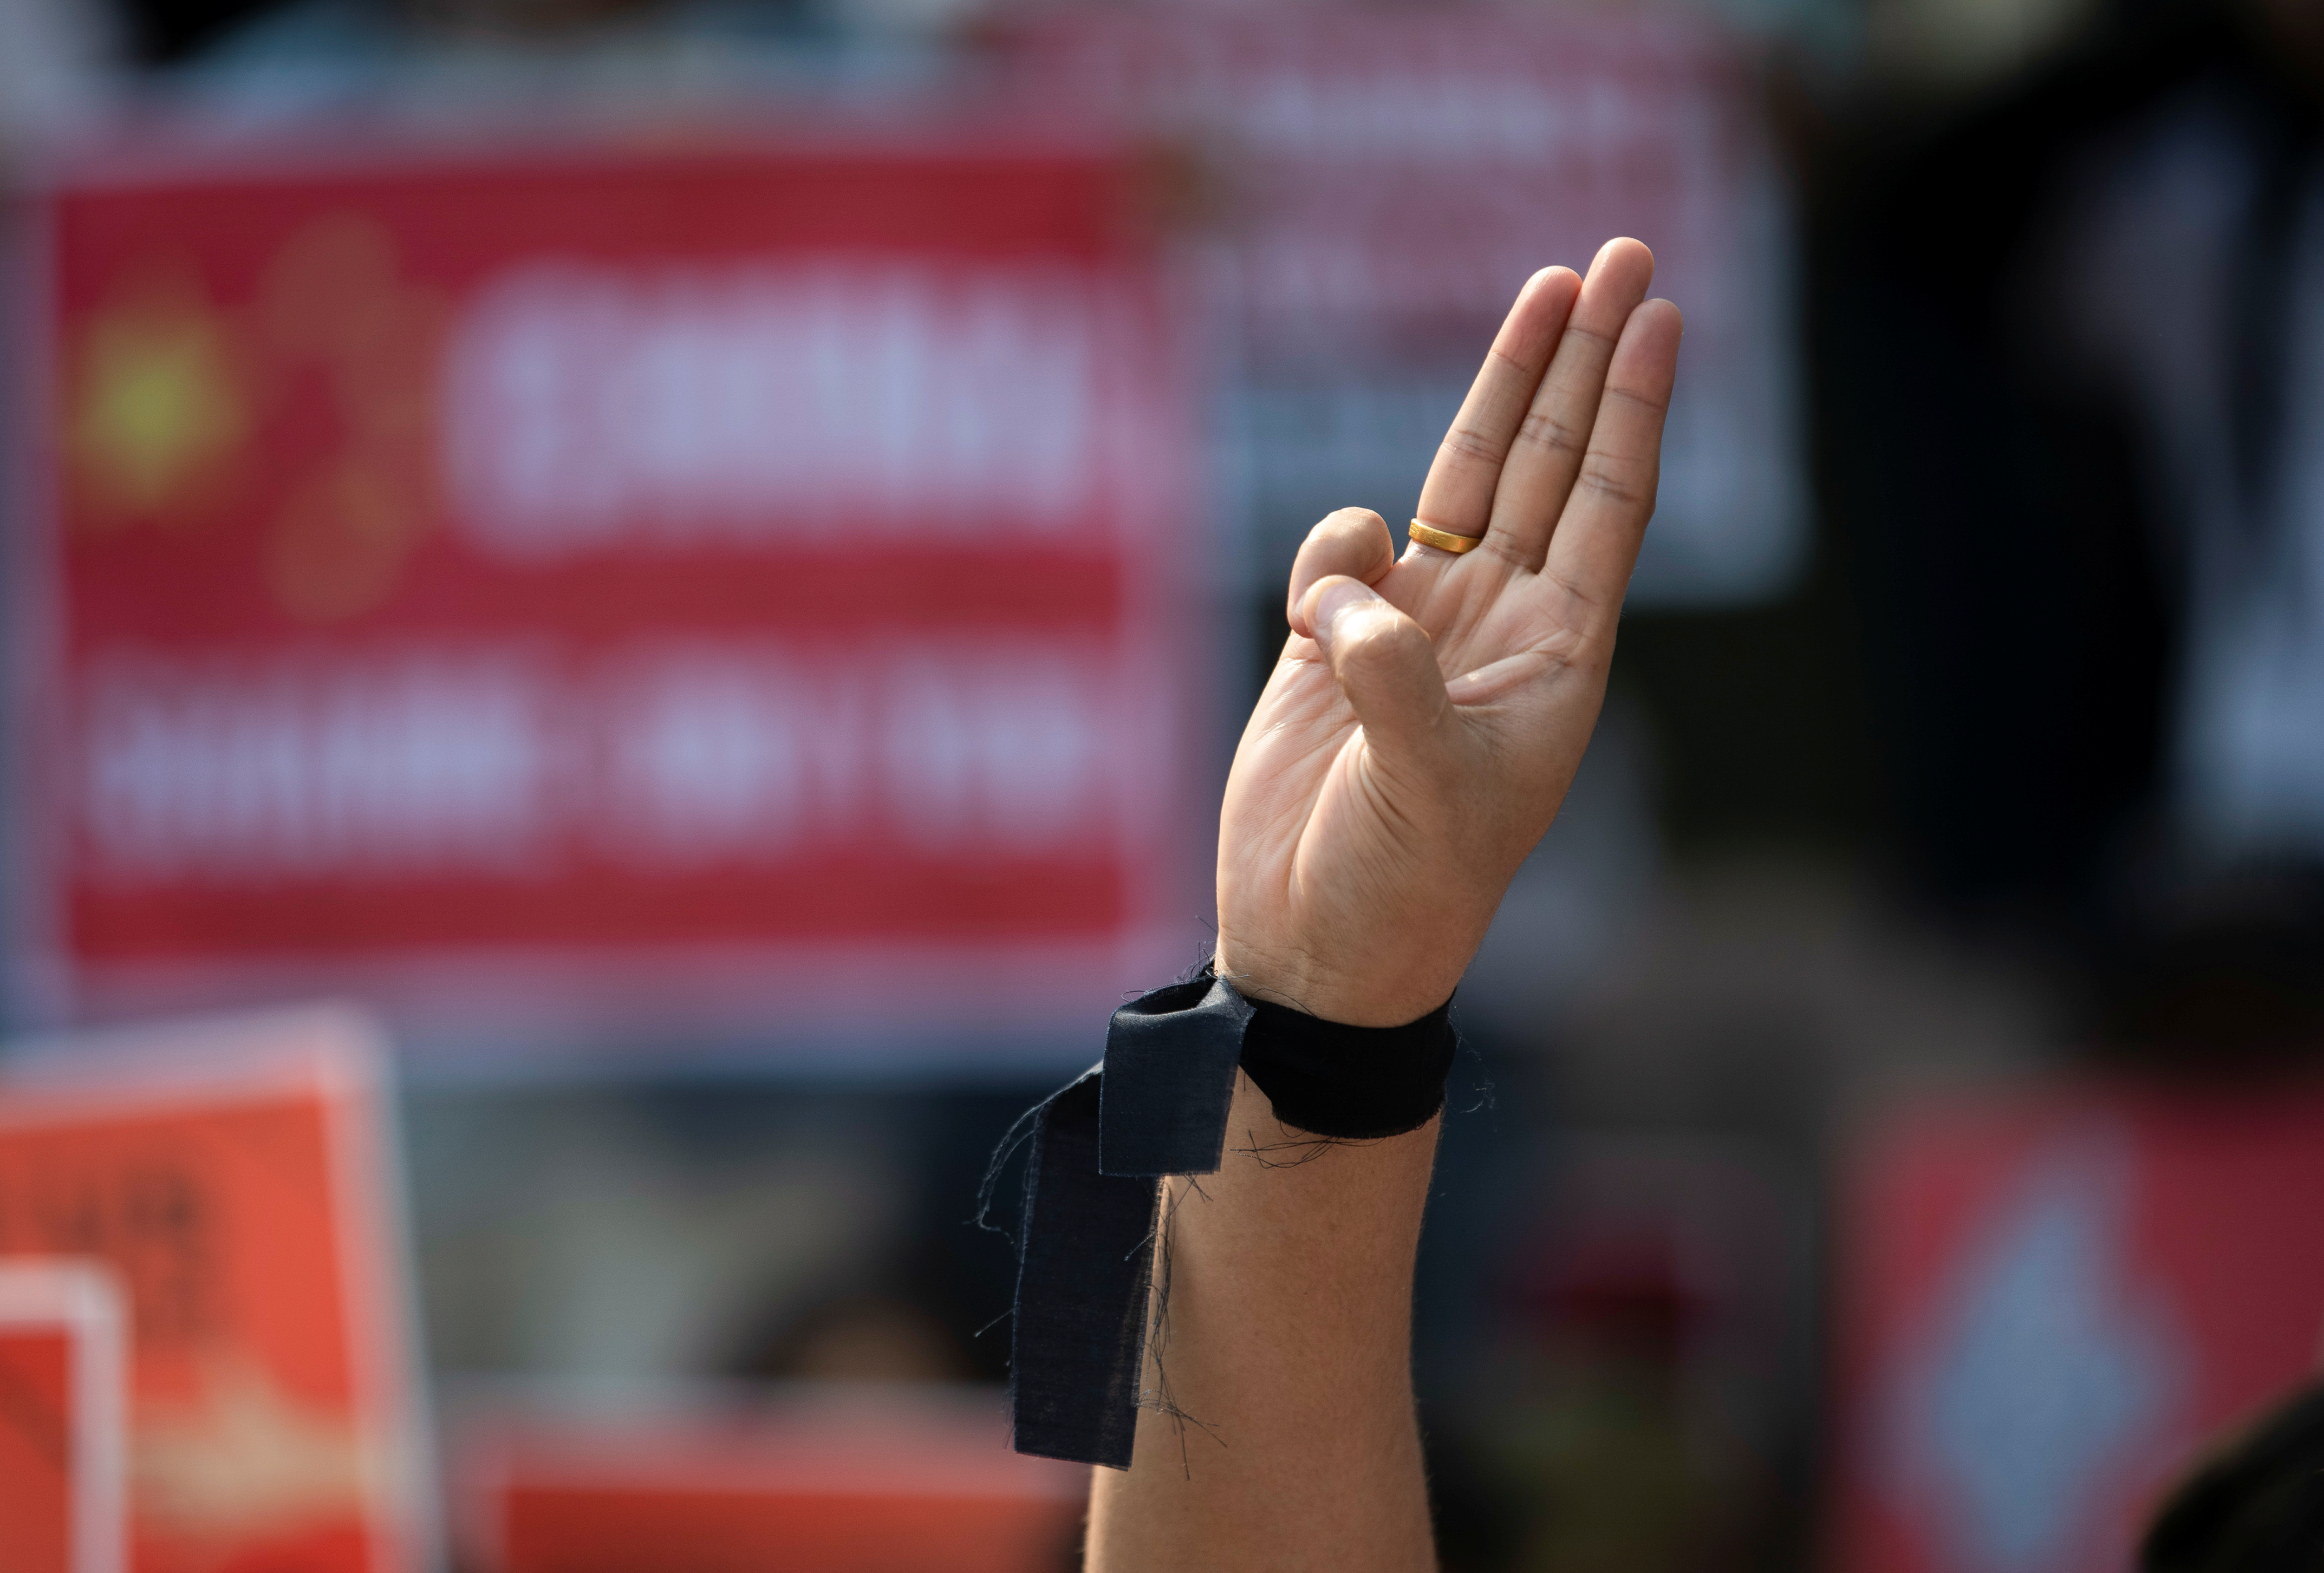 A demonstrator shows the three-finger salute during a protest against the military coup in Yangon, Myanmar, February 21, 2021. REUTERS/Stringer